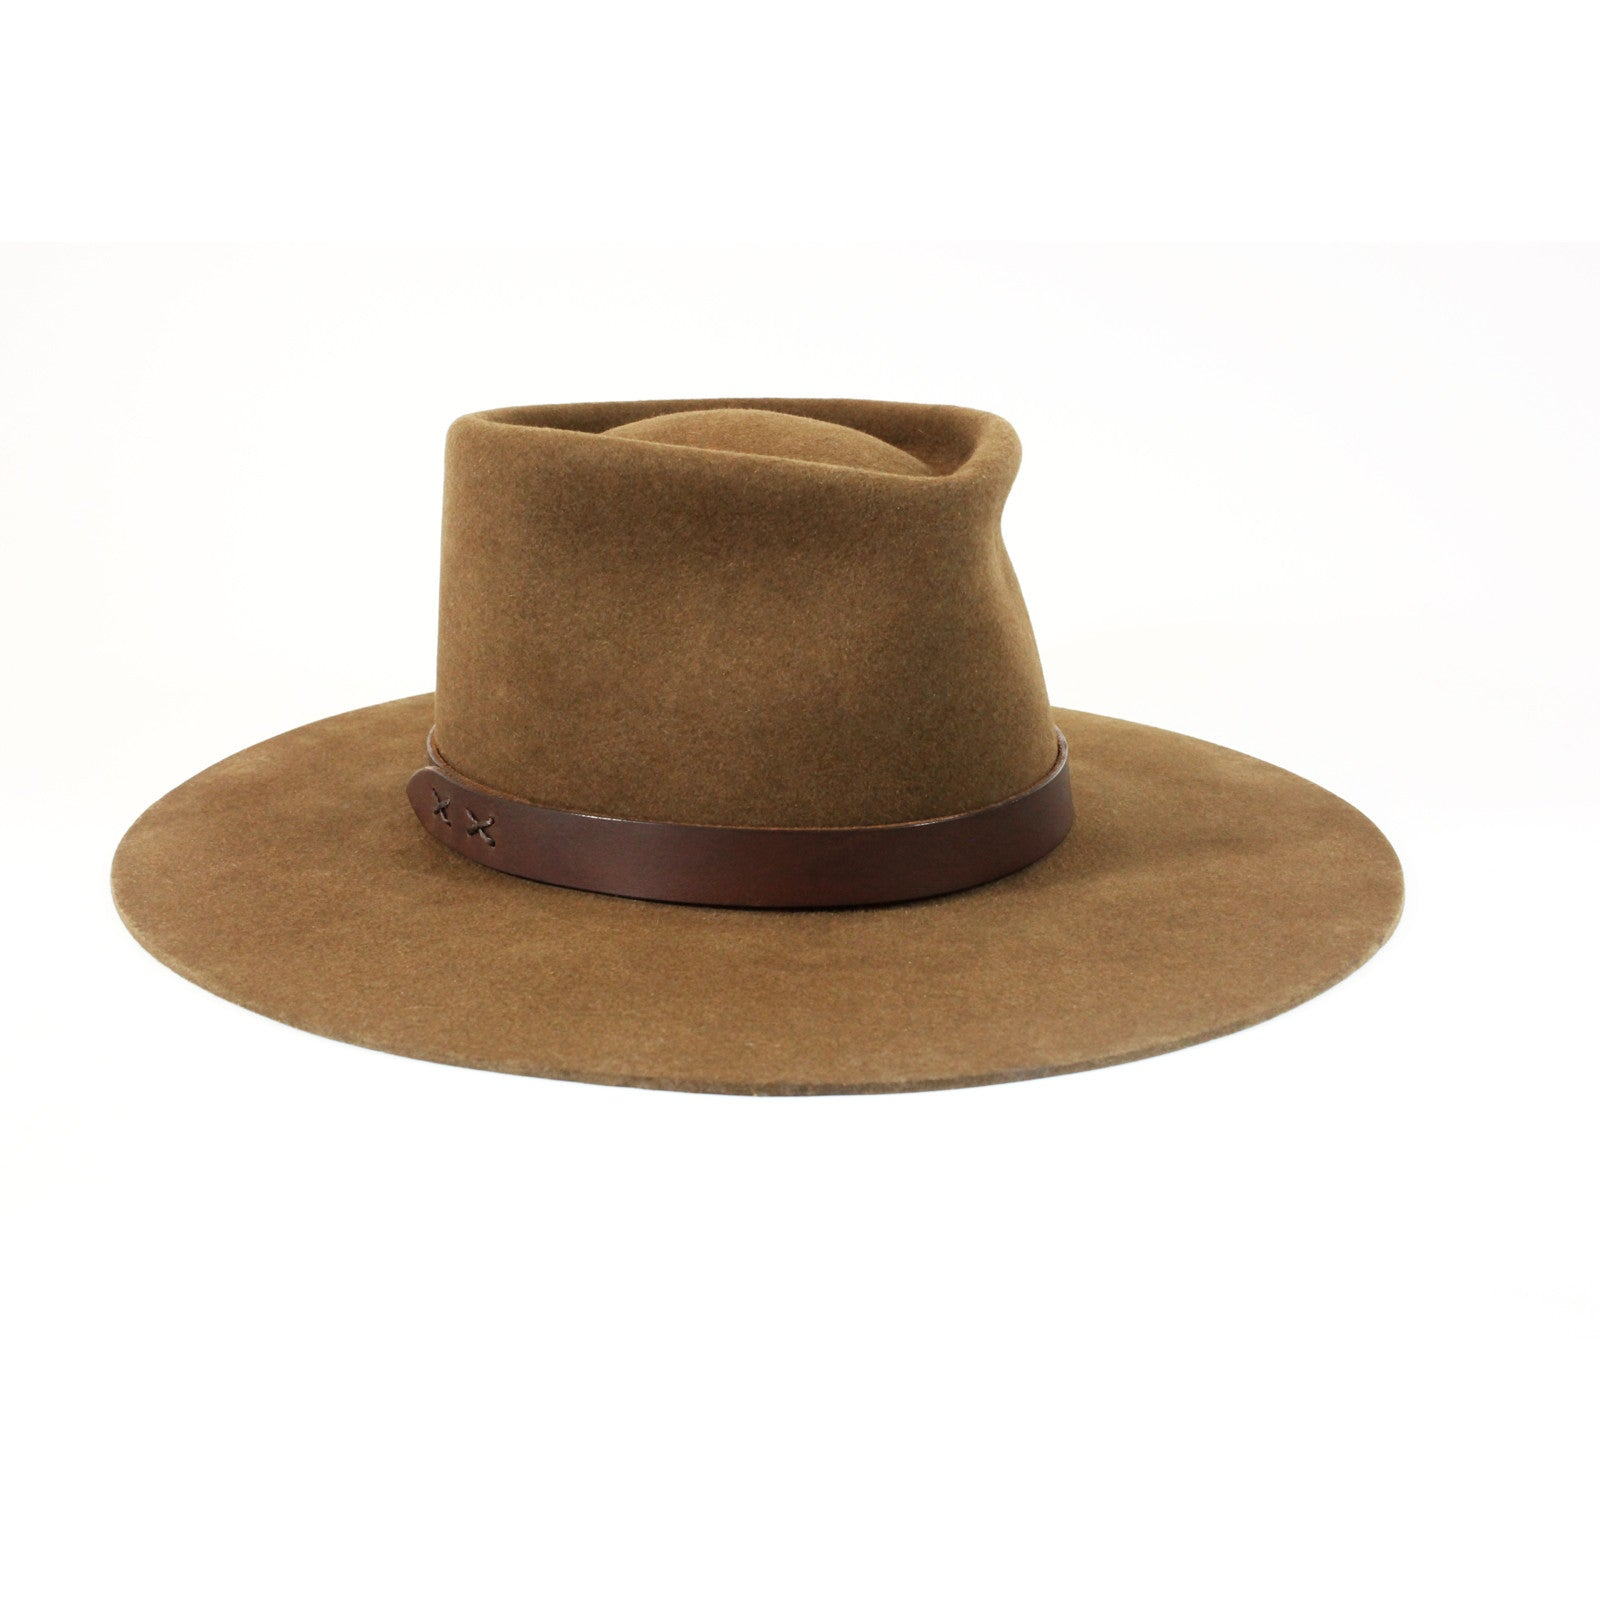 The High Noon Hat